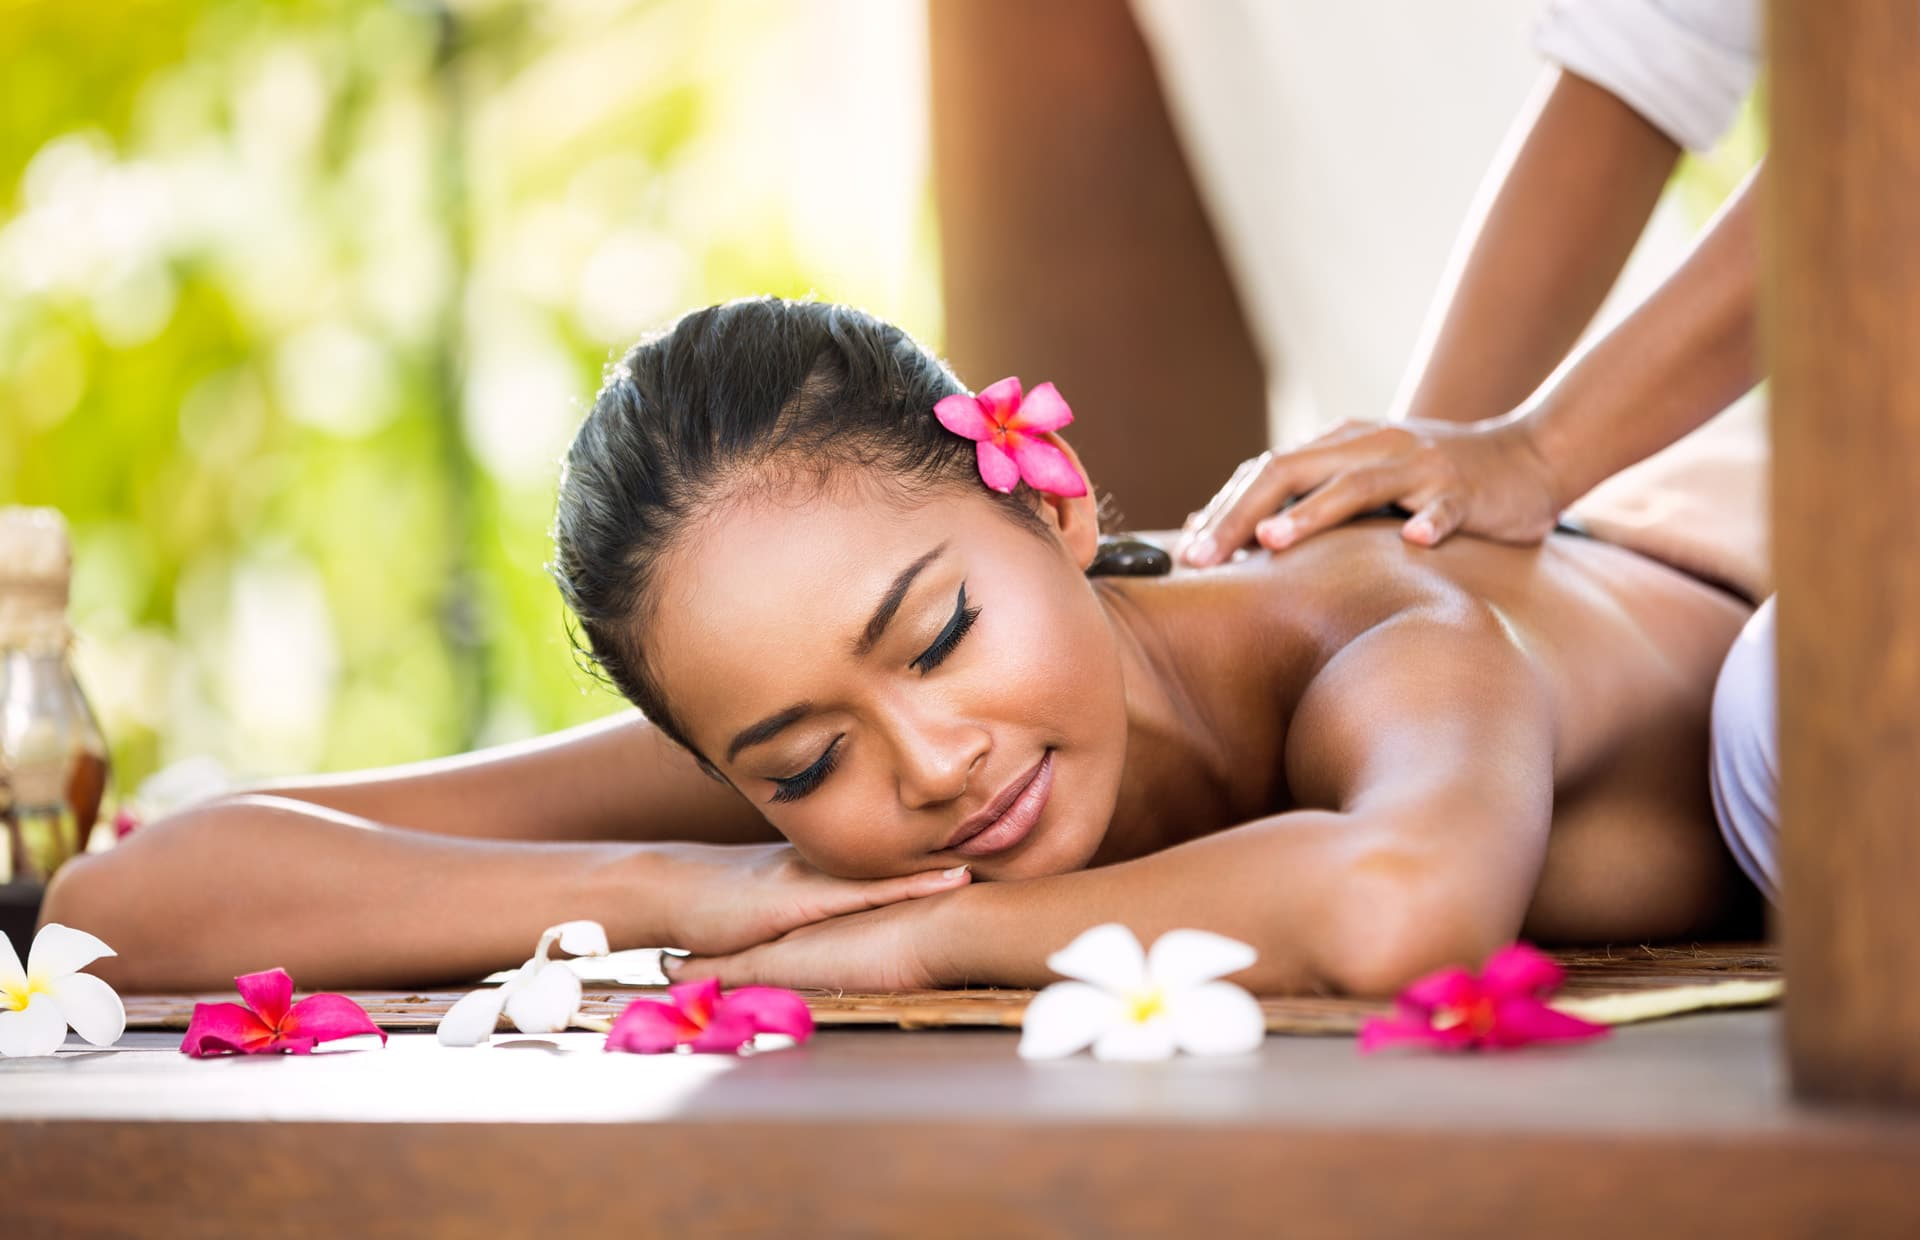 Indonesische massage (Pitjit)